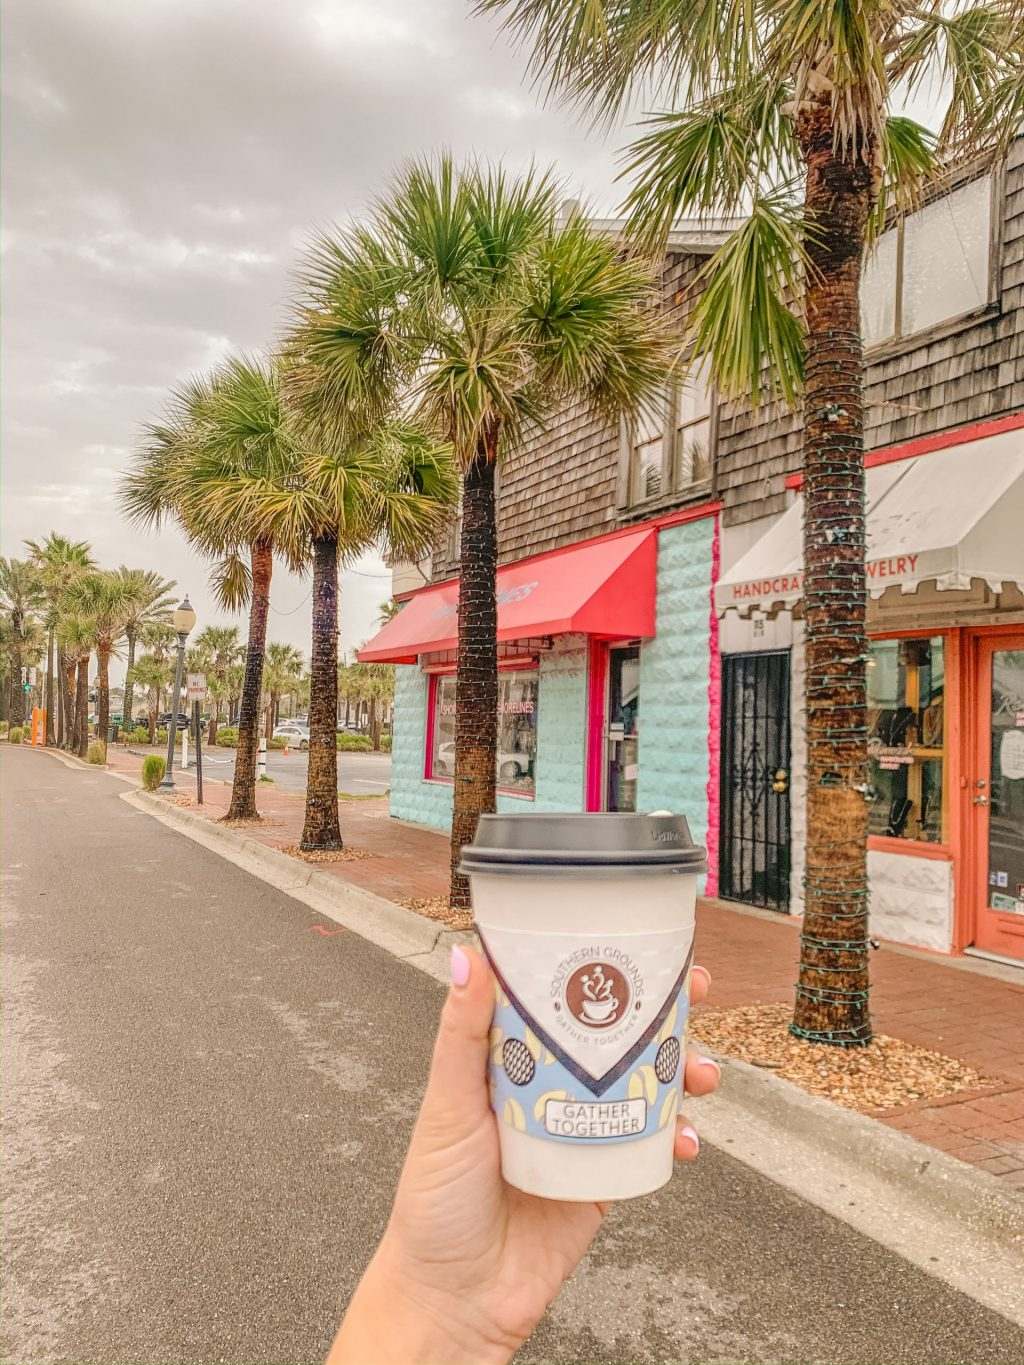 Jacksonville, Florida Travel Guide. Best activities to do and places to see. This fun, detailed Jacksonville Travel Guide highlights everything you need to know for your trip.